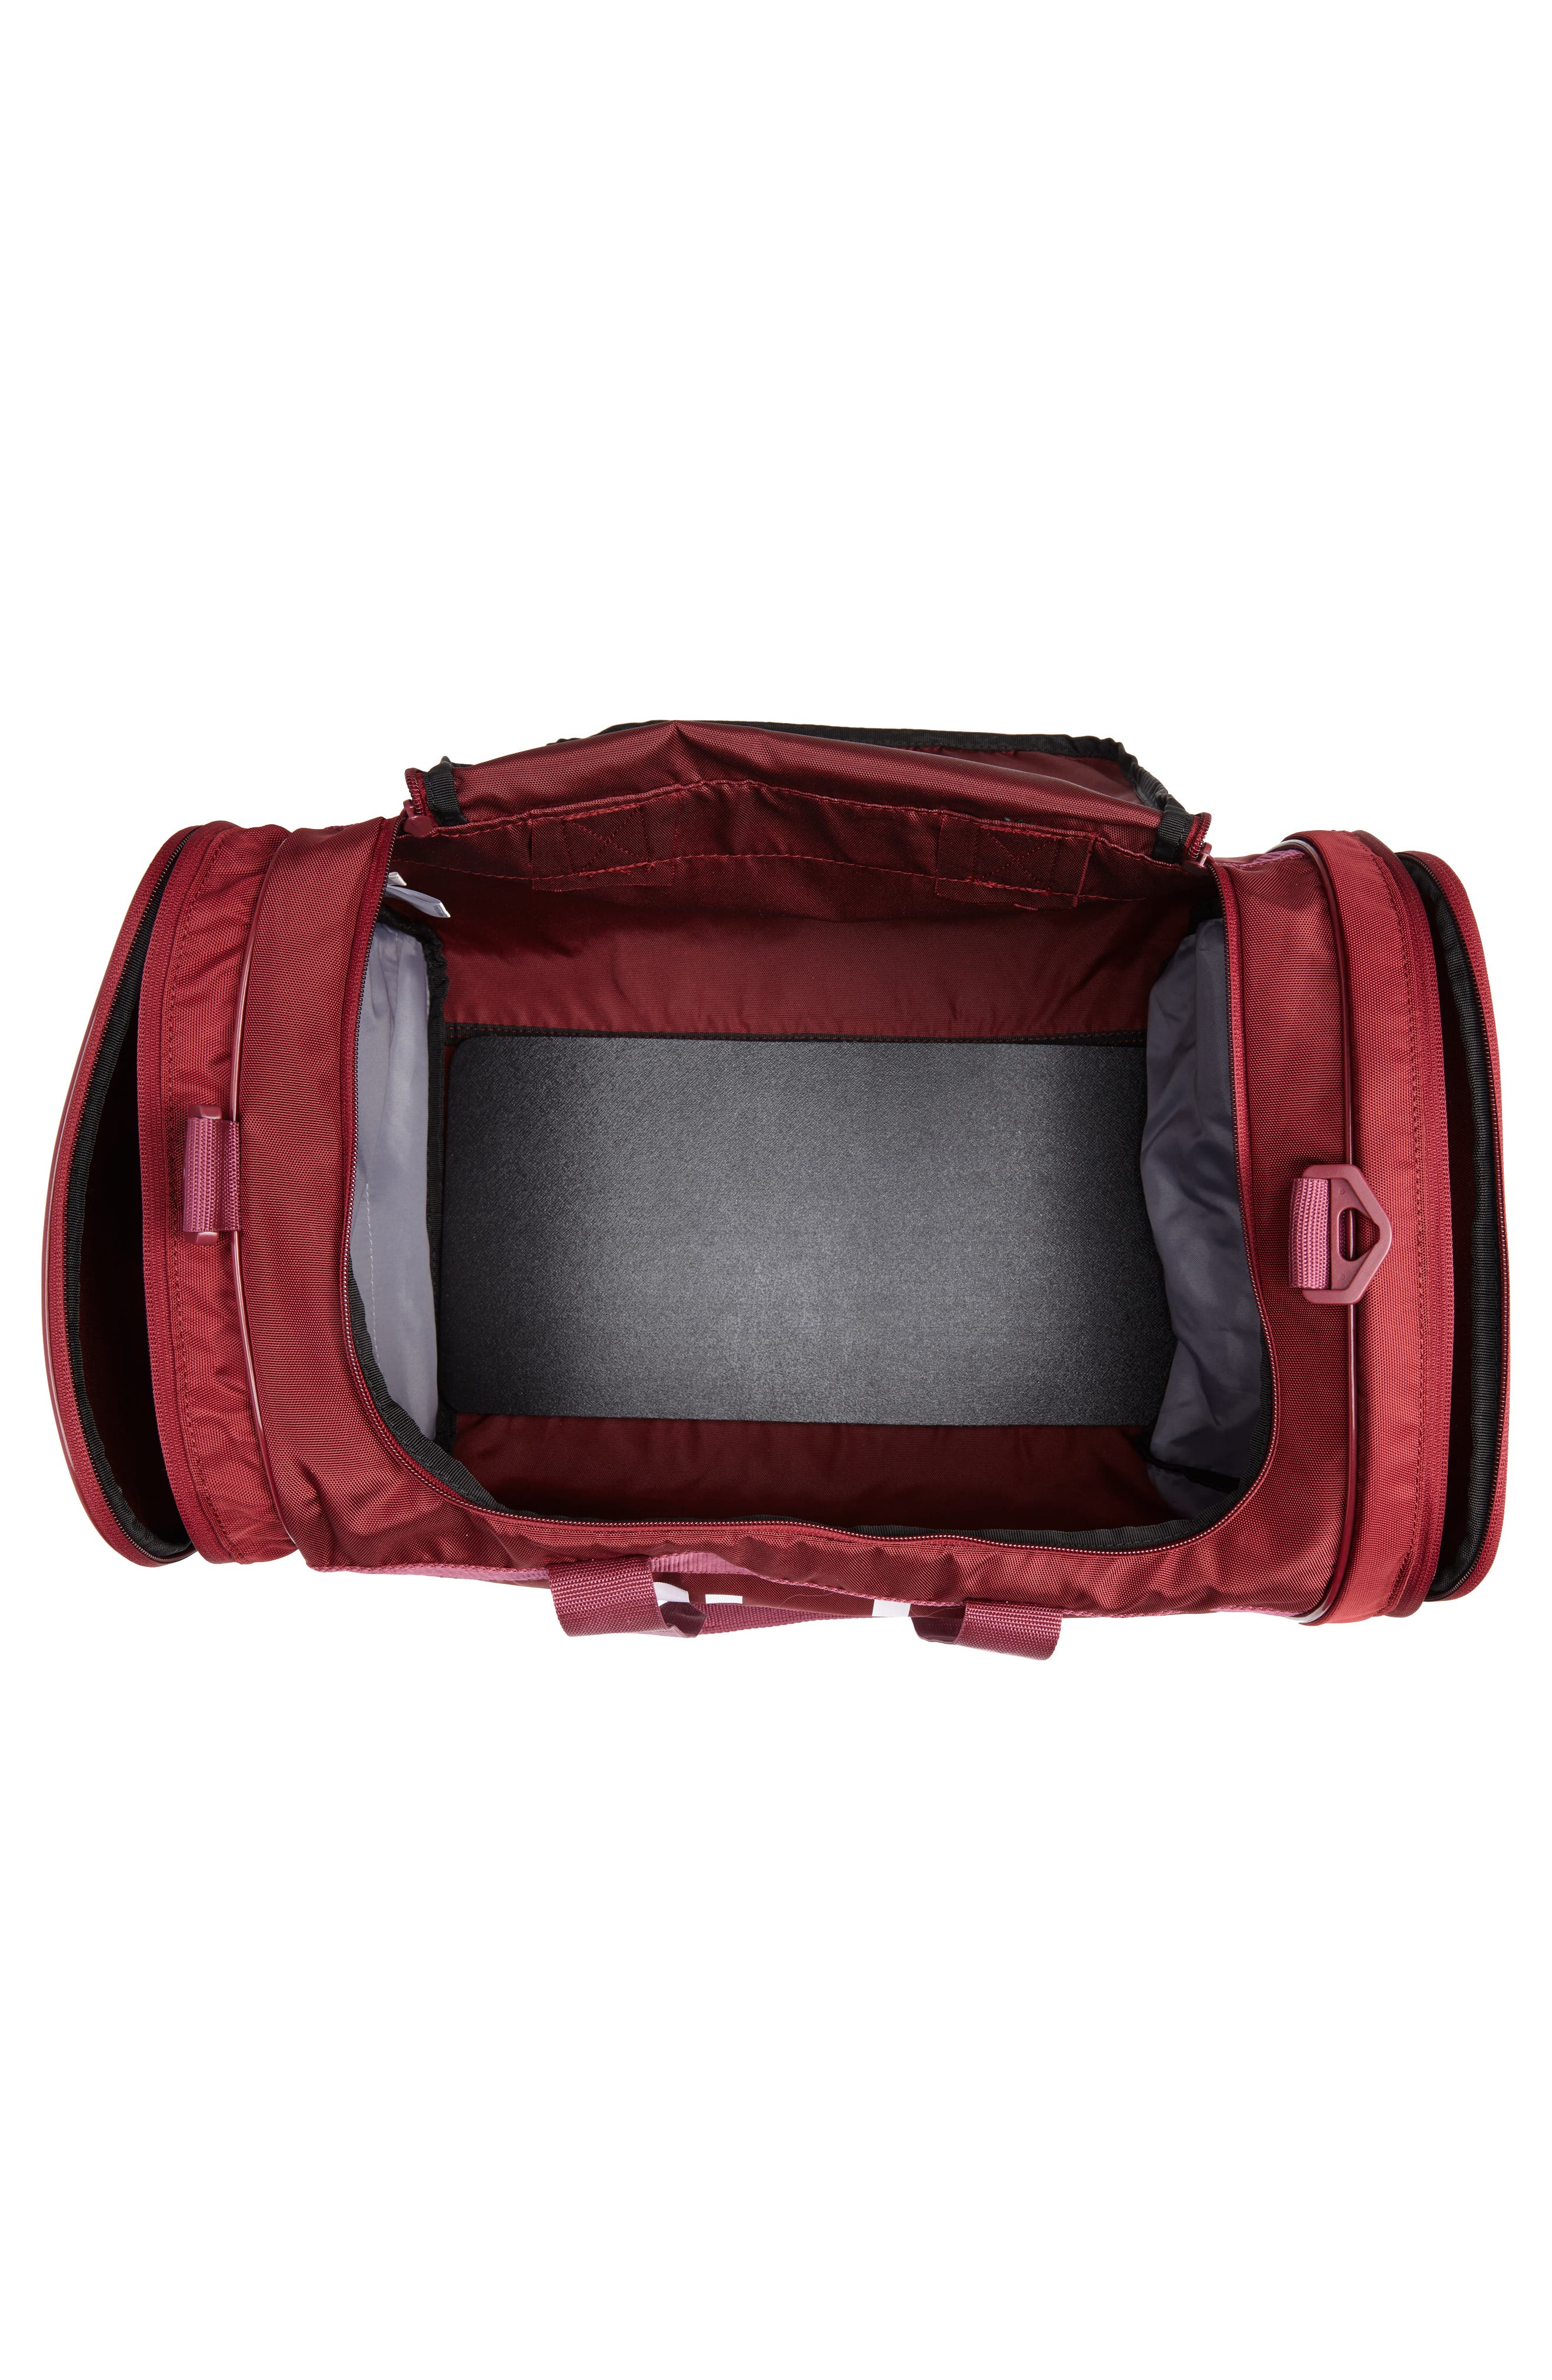 adidas Original Santiago Duffel Bag,                             Alternate thumbnail 4, color,                             COLLEGIATE BURGUNDY/ WHITE